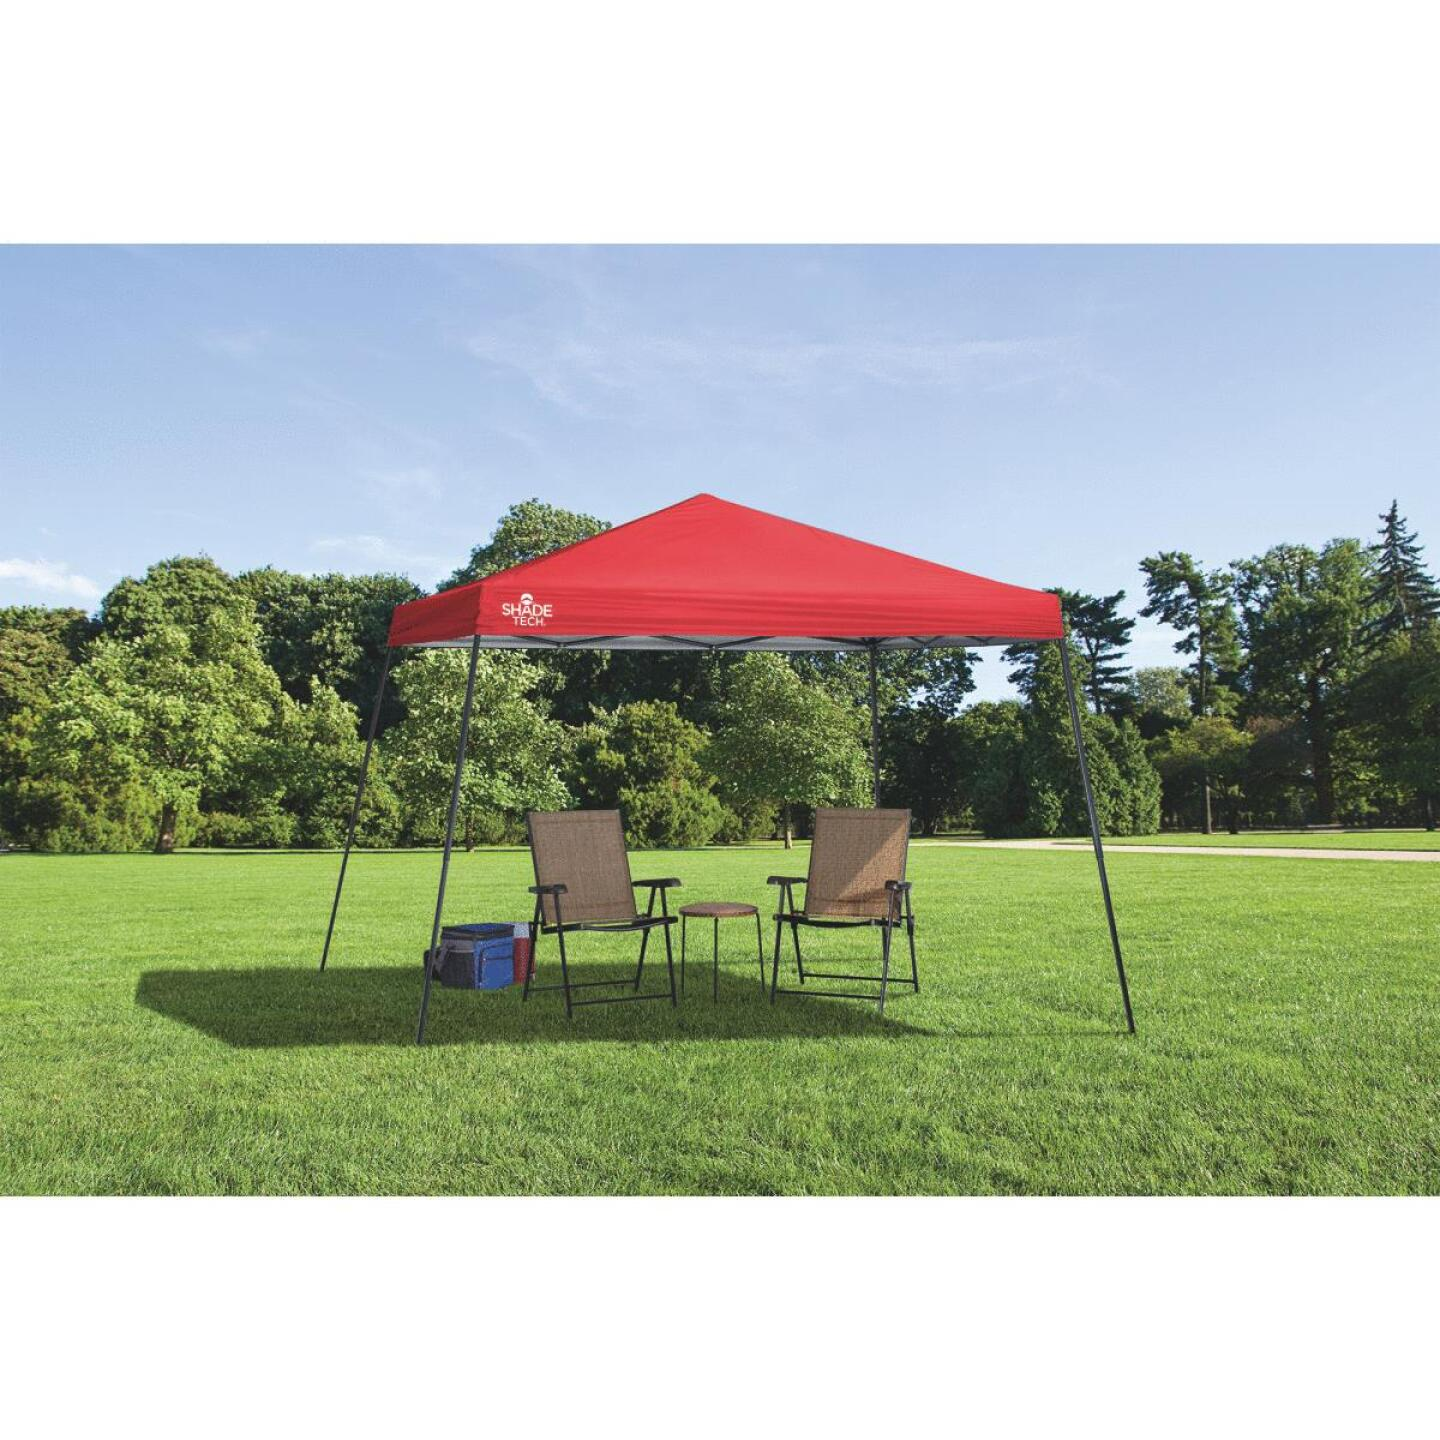 Quik Shade Shade Tech 12 Ft. x 12 Ft. Red Aluminex Fabric Canopy Image 2